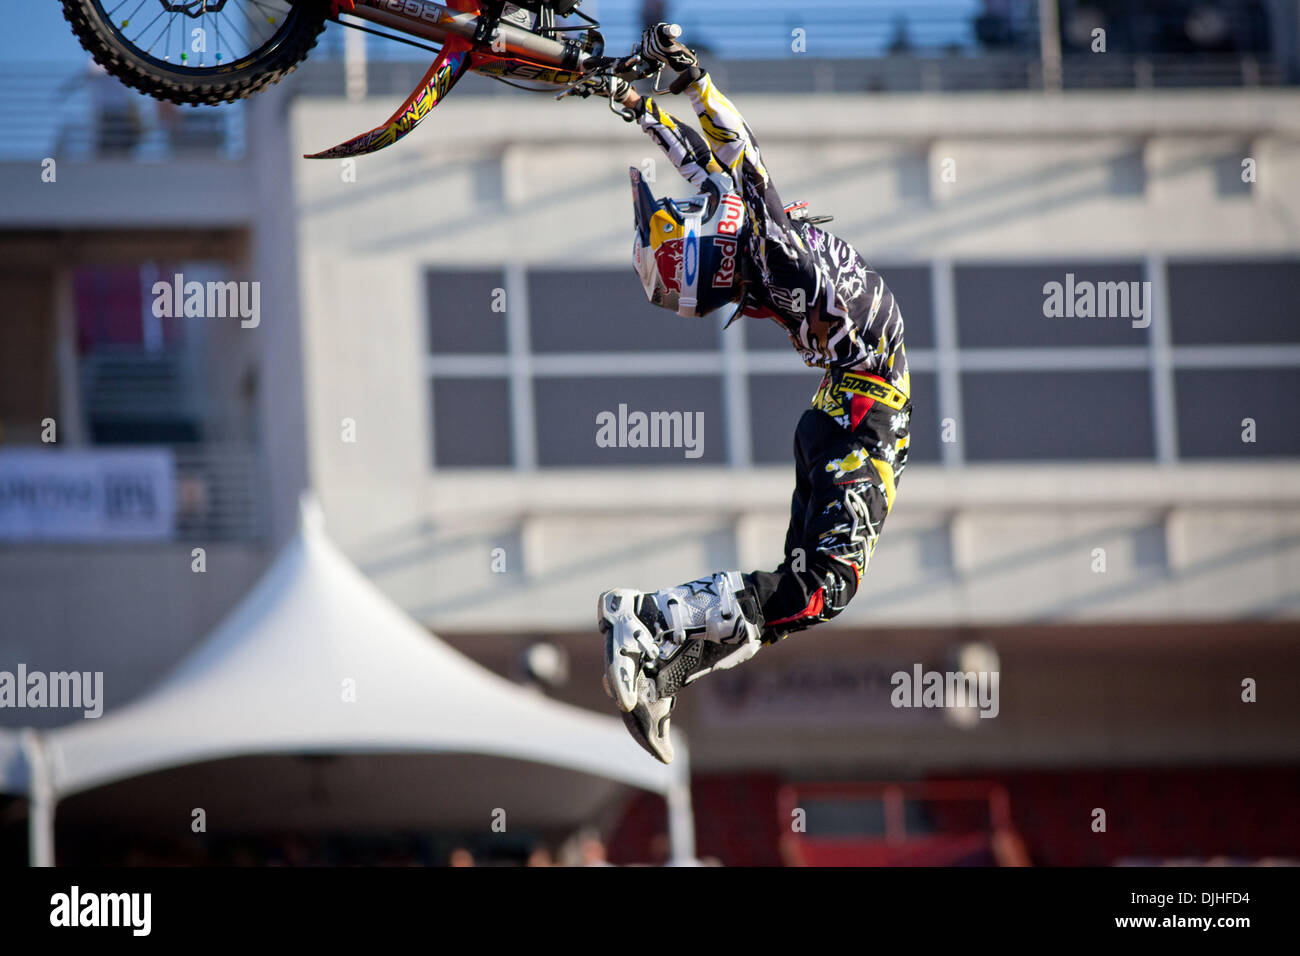 July 29, 2010 - Los Angeles, CA, United States of America - 28 July 2010:  Levi Sherwood's style and huge airs earned him a silver medal in mens Moto X Freestyle at the X Games in Los Angeles, CA.  Mandatory Credit: Josh Chapel / Southcreek Global (Credit Image: © Southcreek Global/ZUMApress.com) - Stock Image